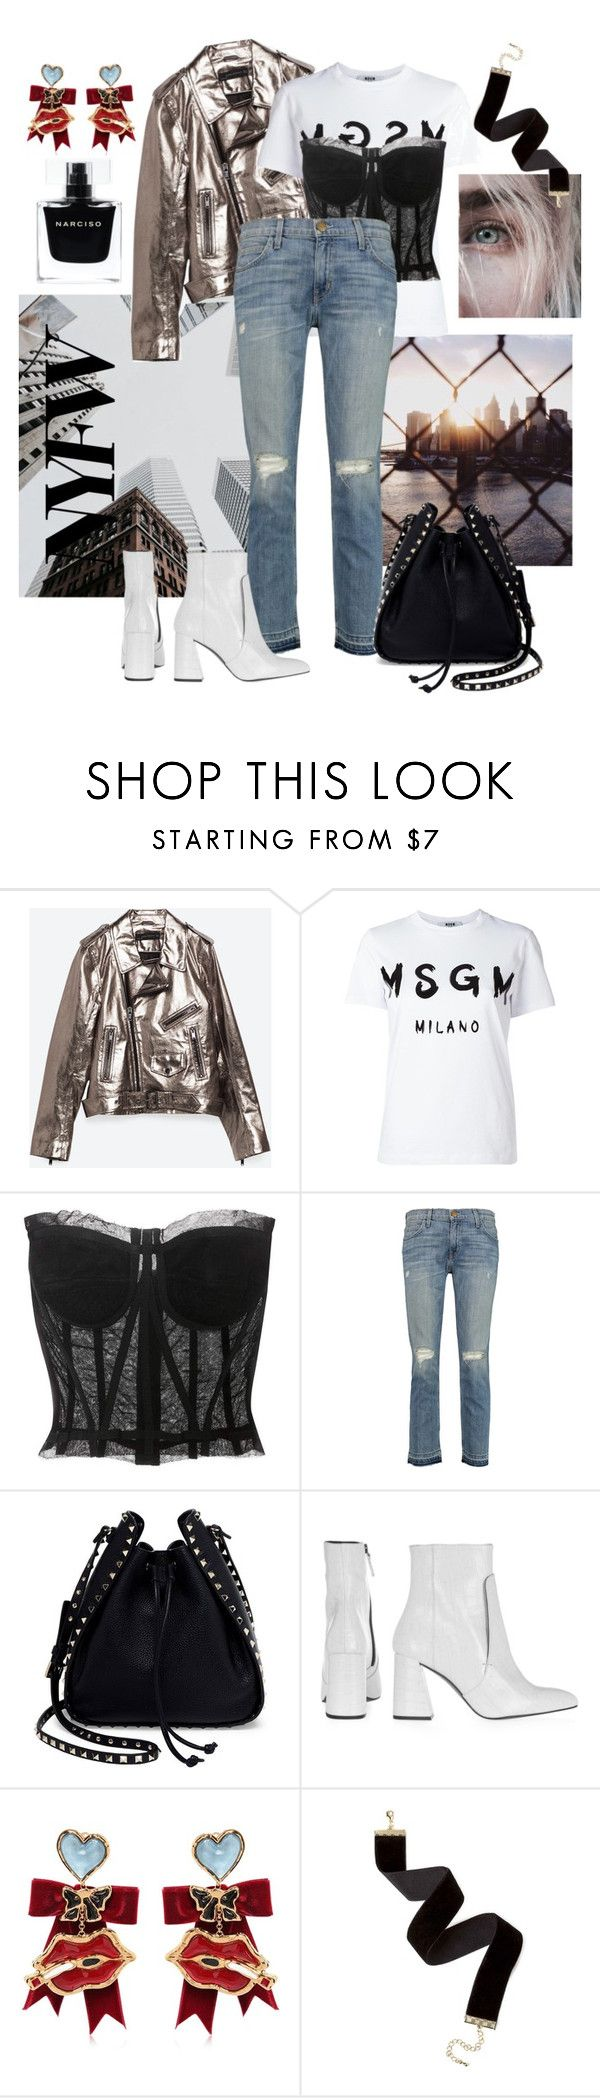 """""""Full metal jacket"""" by sophier on Polyvore featuring Piel Leather, MSGM, Dolce&Gabbana, Current/Elliott, Valentino, Topshop, Dsquared2 and Narciso Rodriguez"""